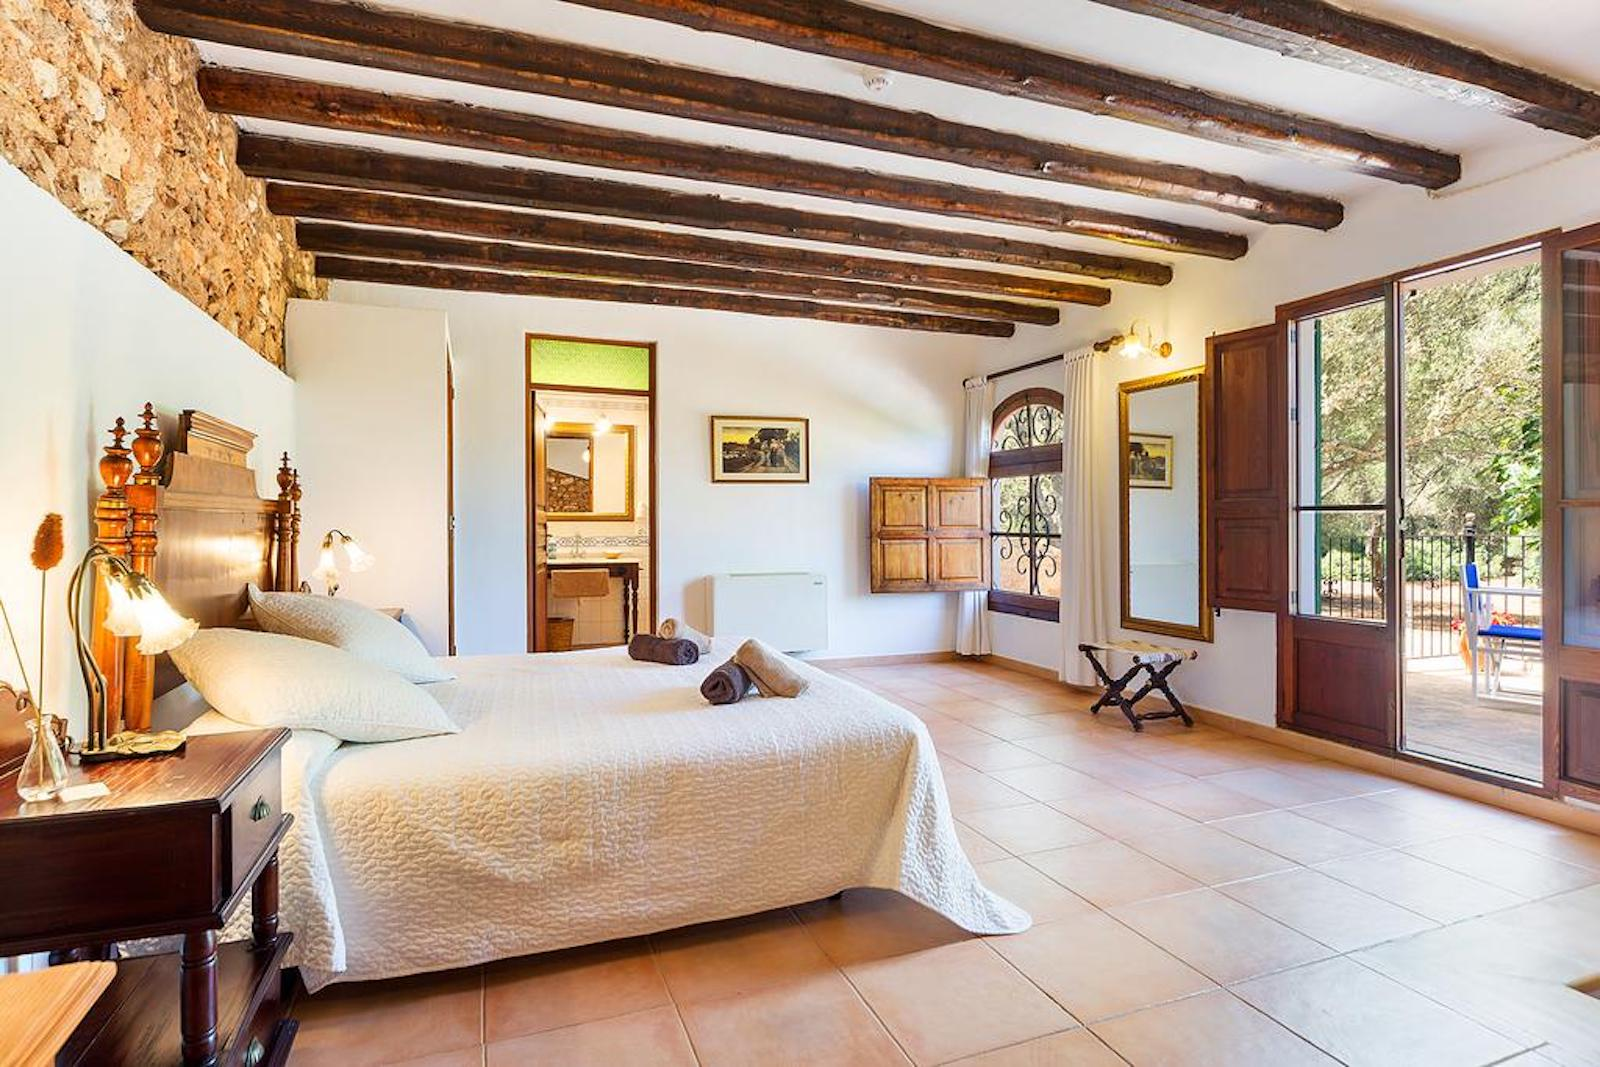 ISLA-Travel-Finca-Hotel-Mallorca-Juniorsuite-